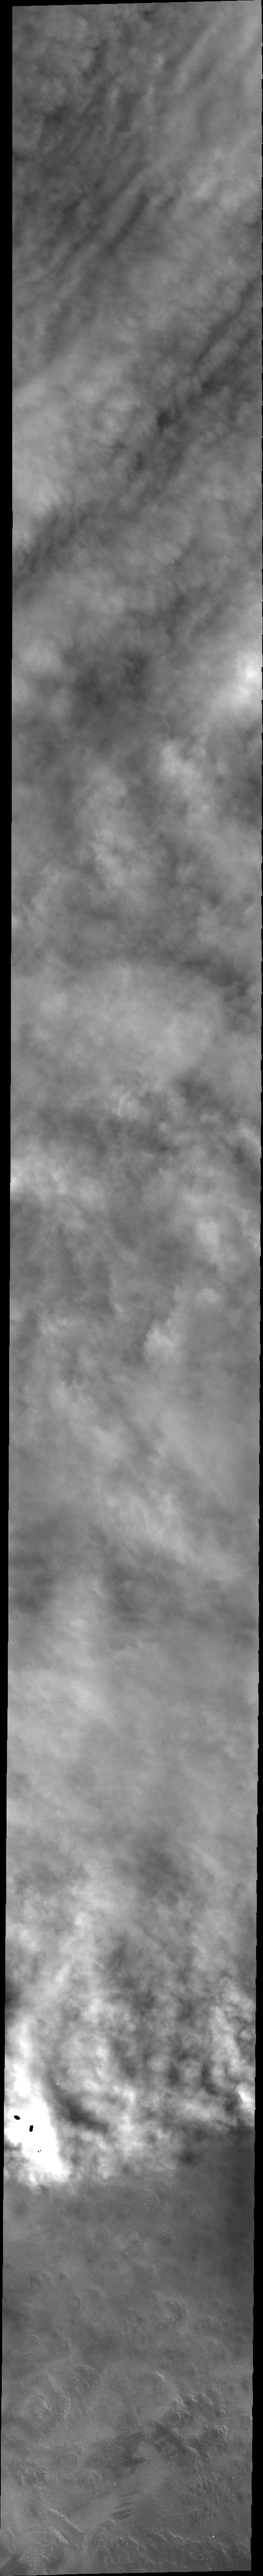 This image captured by NASA's 2001 Mars Odyssey spacecraft shows the edge of the clouds in a weather front in the northern latitudes.